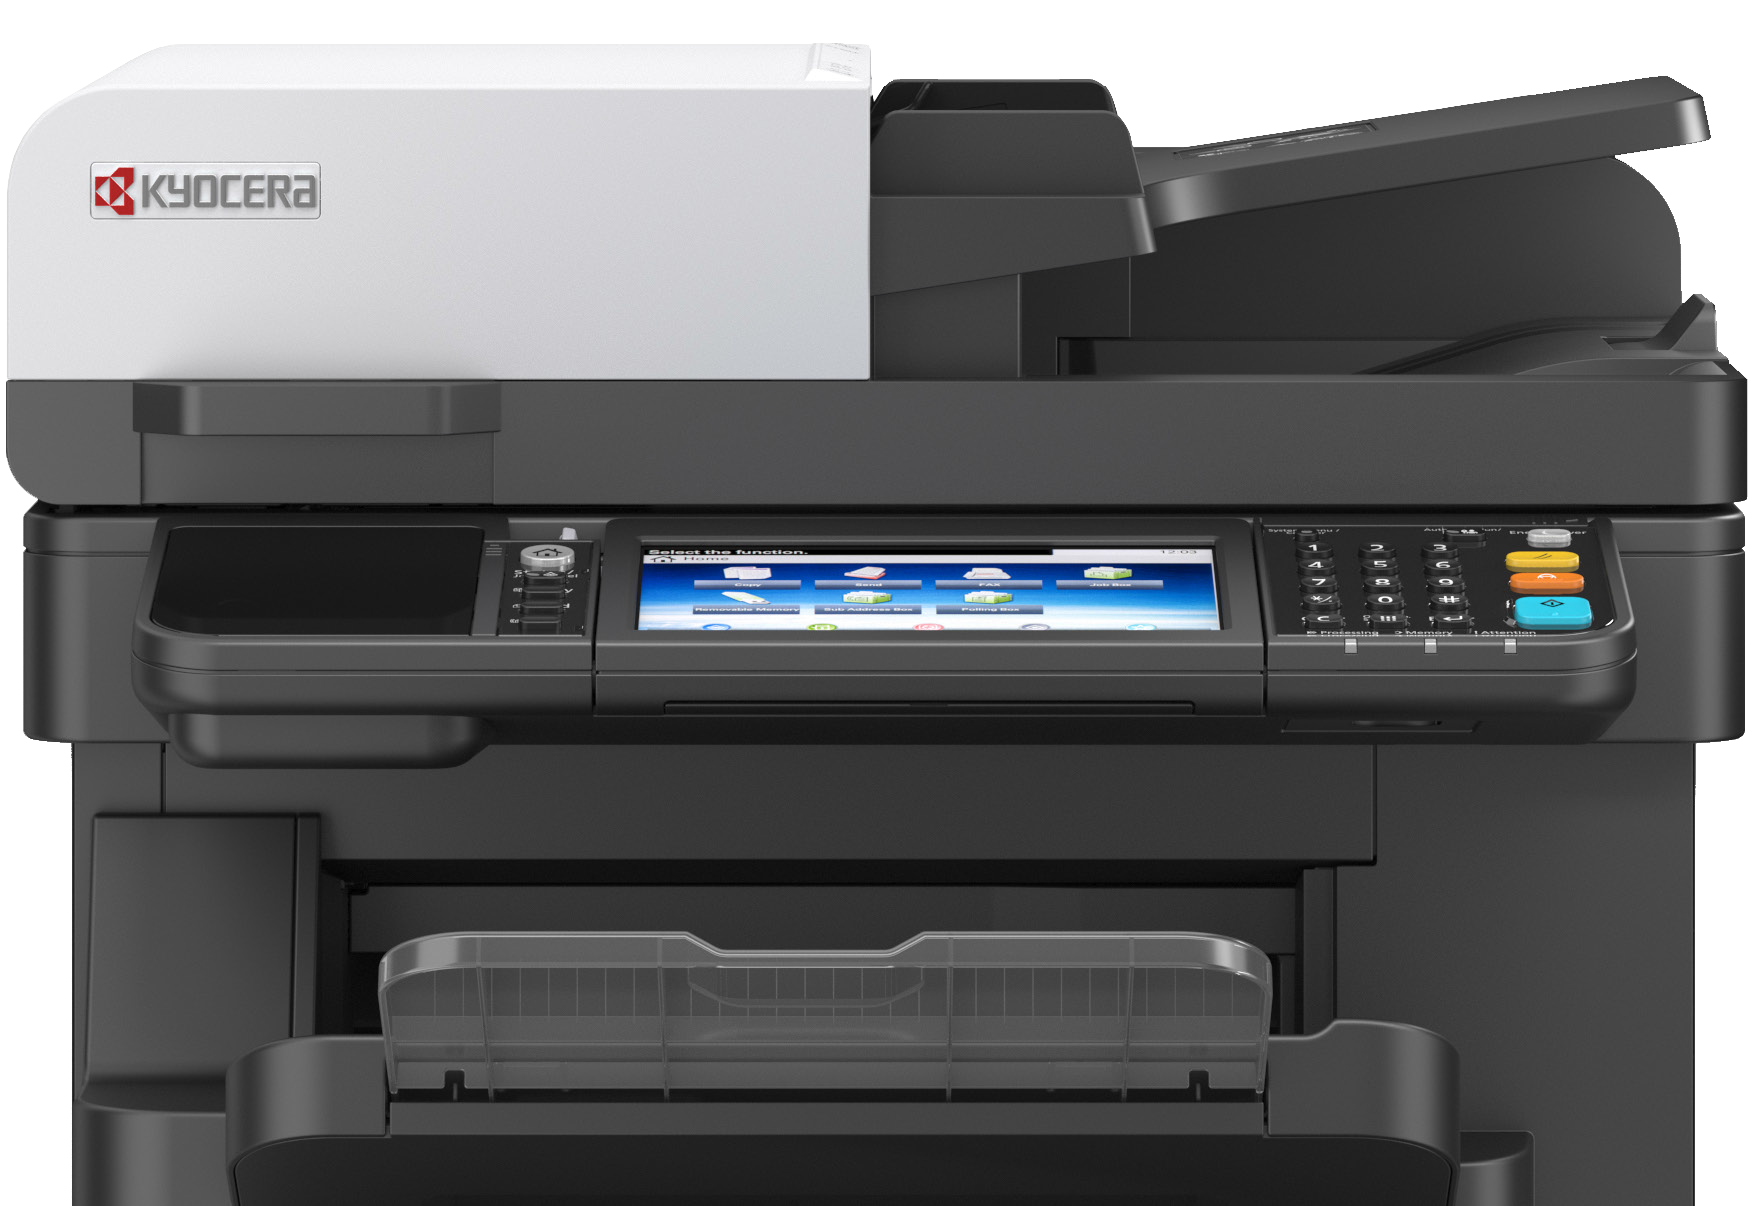 http://rhymebiz.com/sites/rhymebiz.com/assets/images/Kyocera-Printers/Kyocera-Printer-Top.png